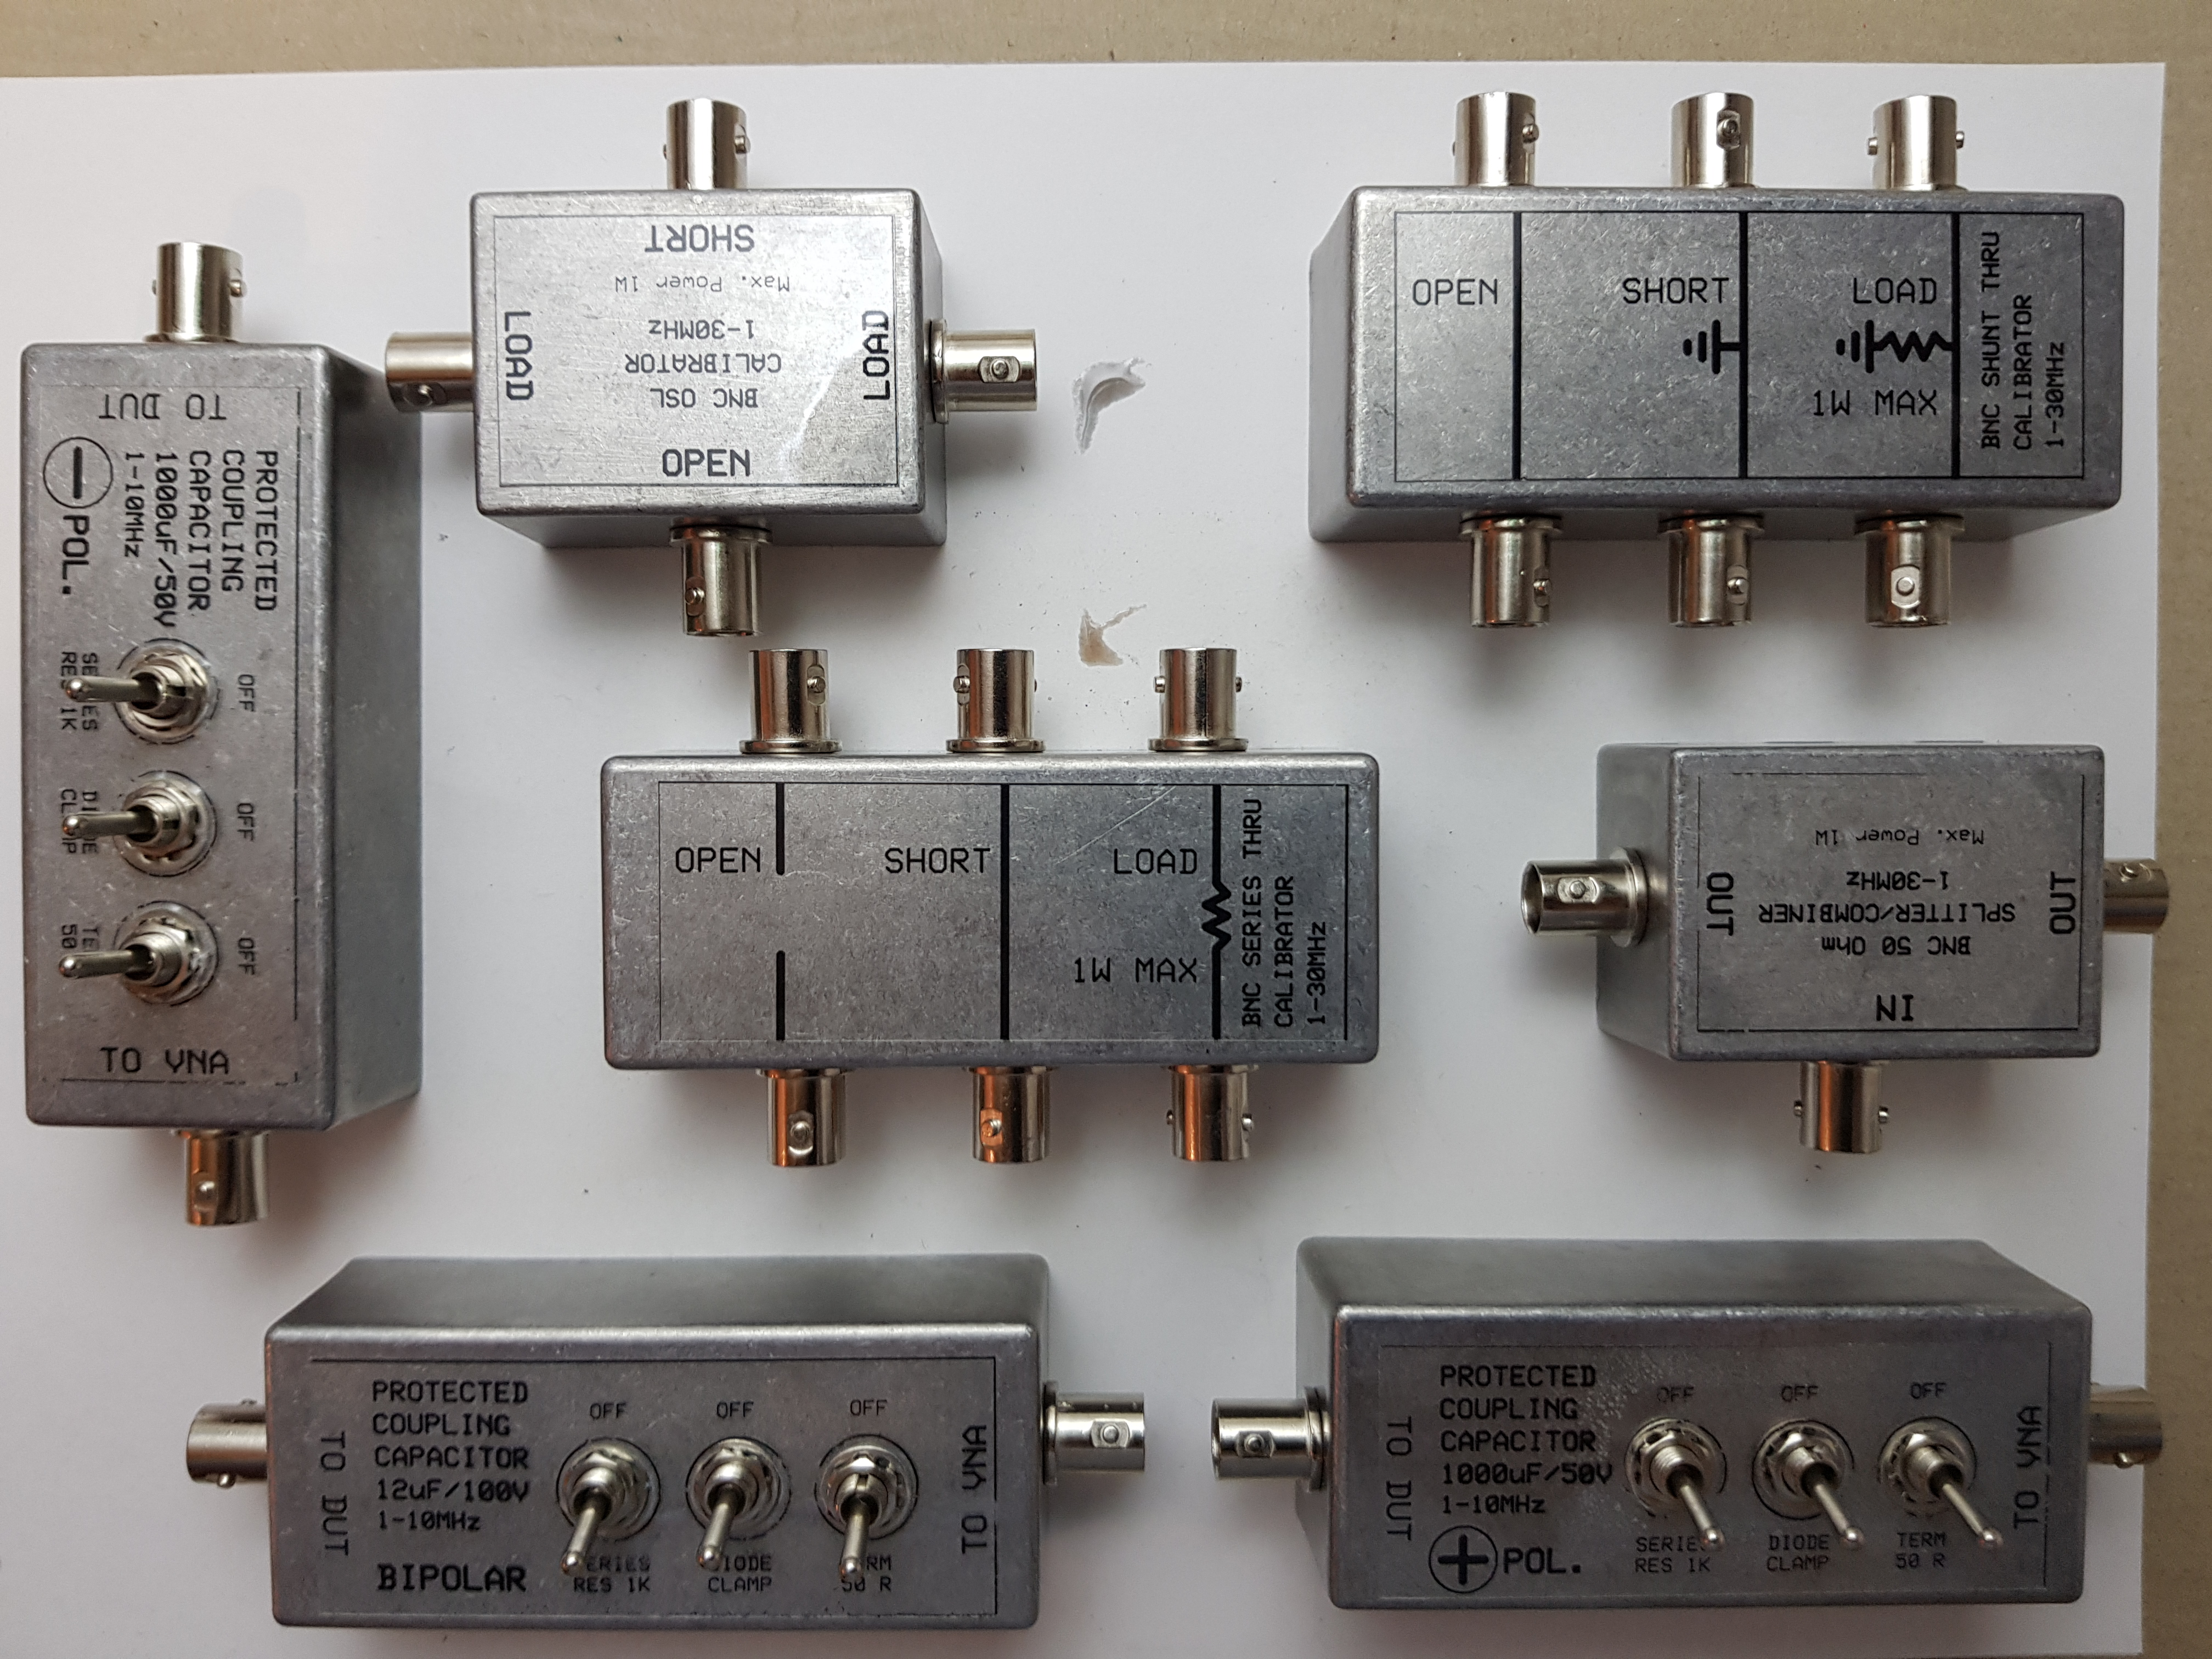 Measuring Power Supply Output Impedance Using a VNA